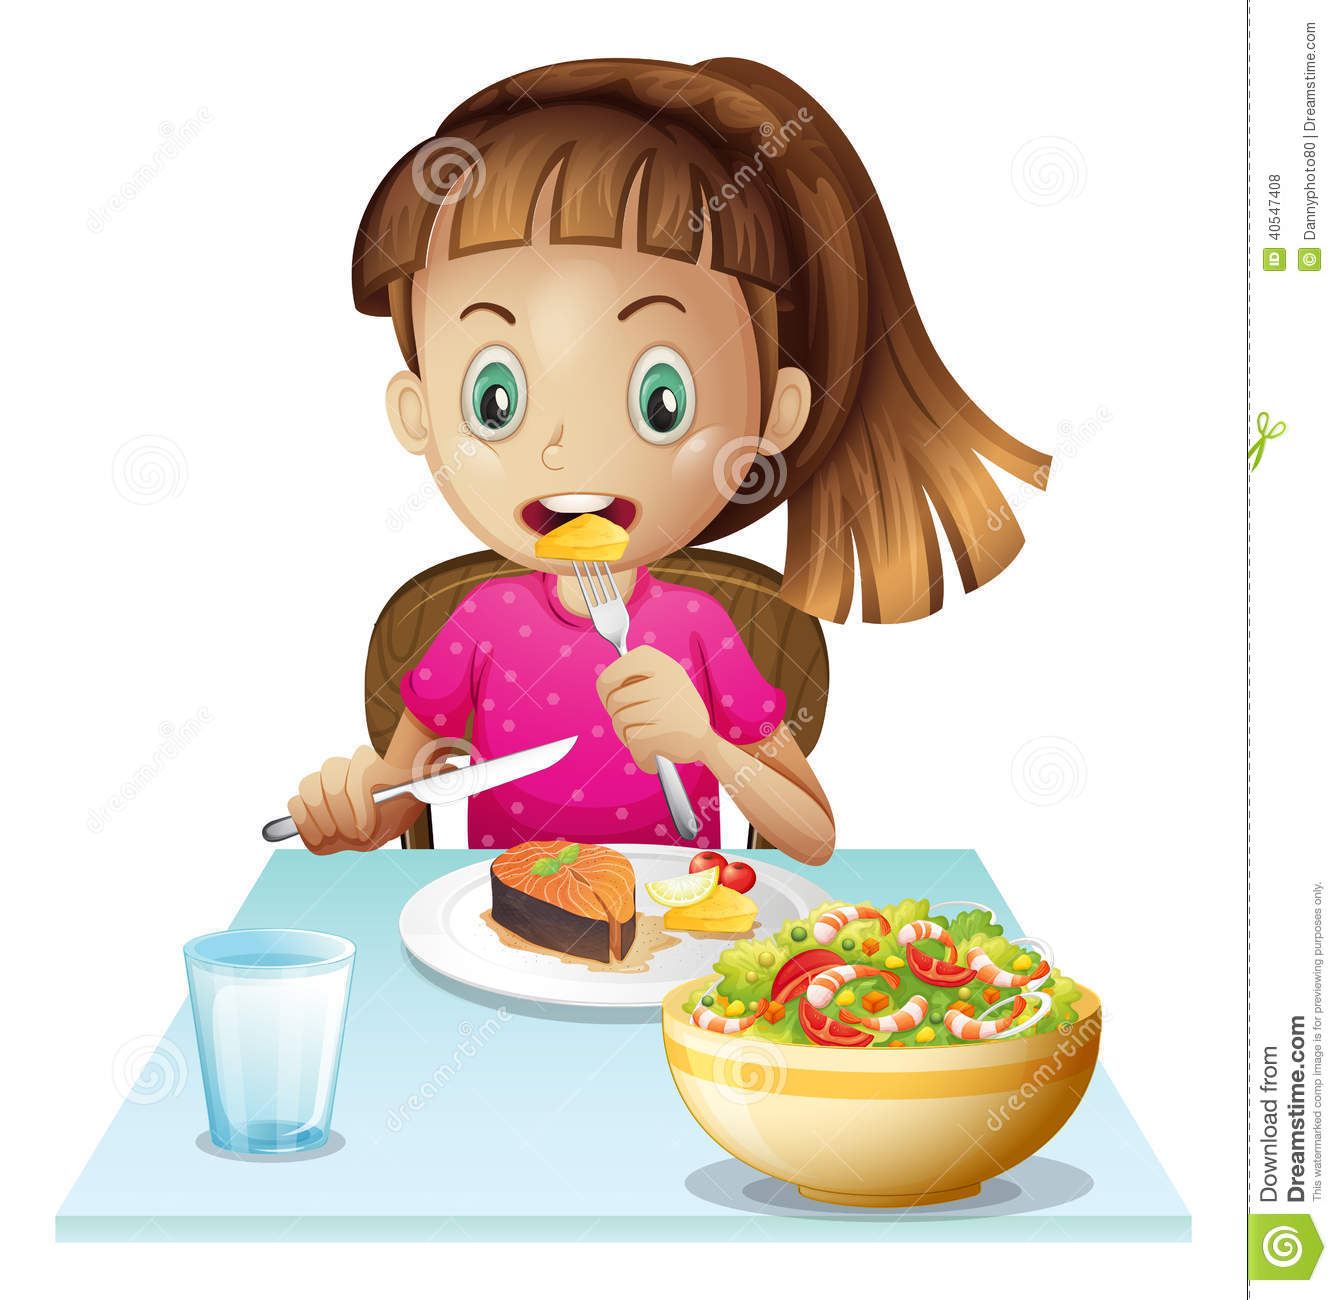 Illustration Of A Little Girl Eating Lunch On A White Background